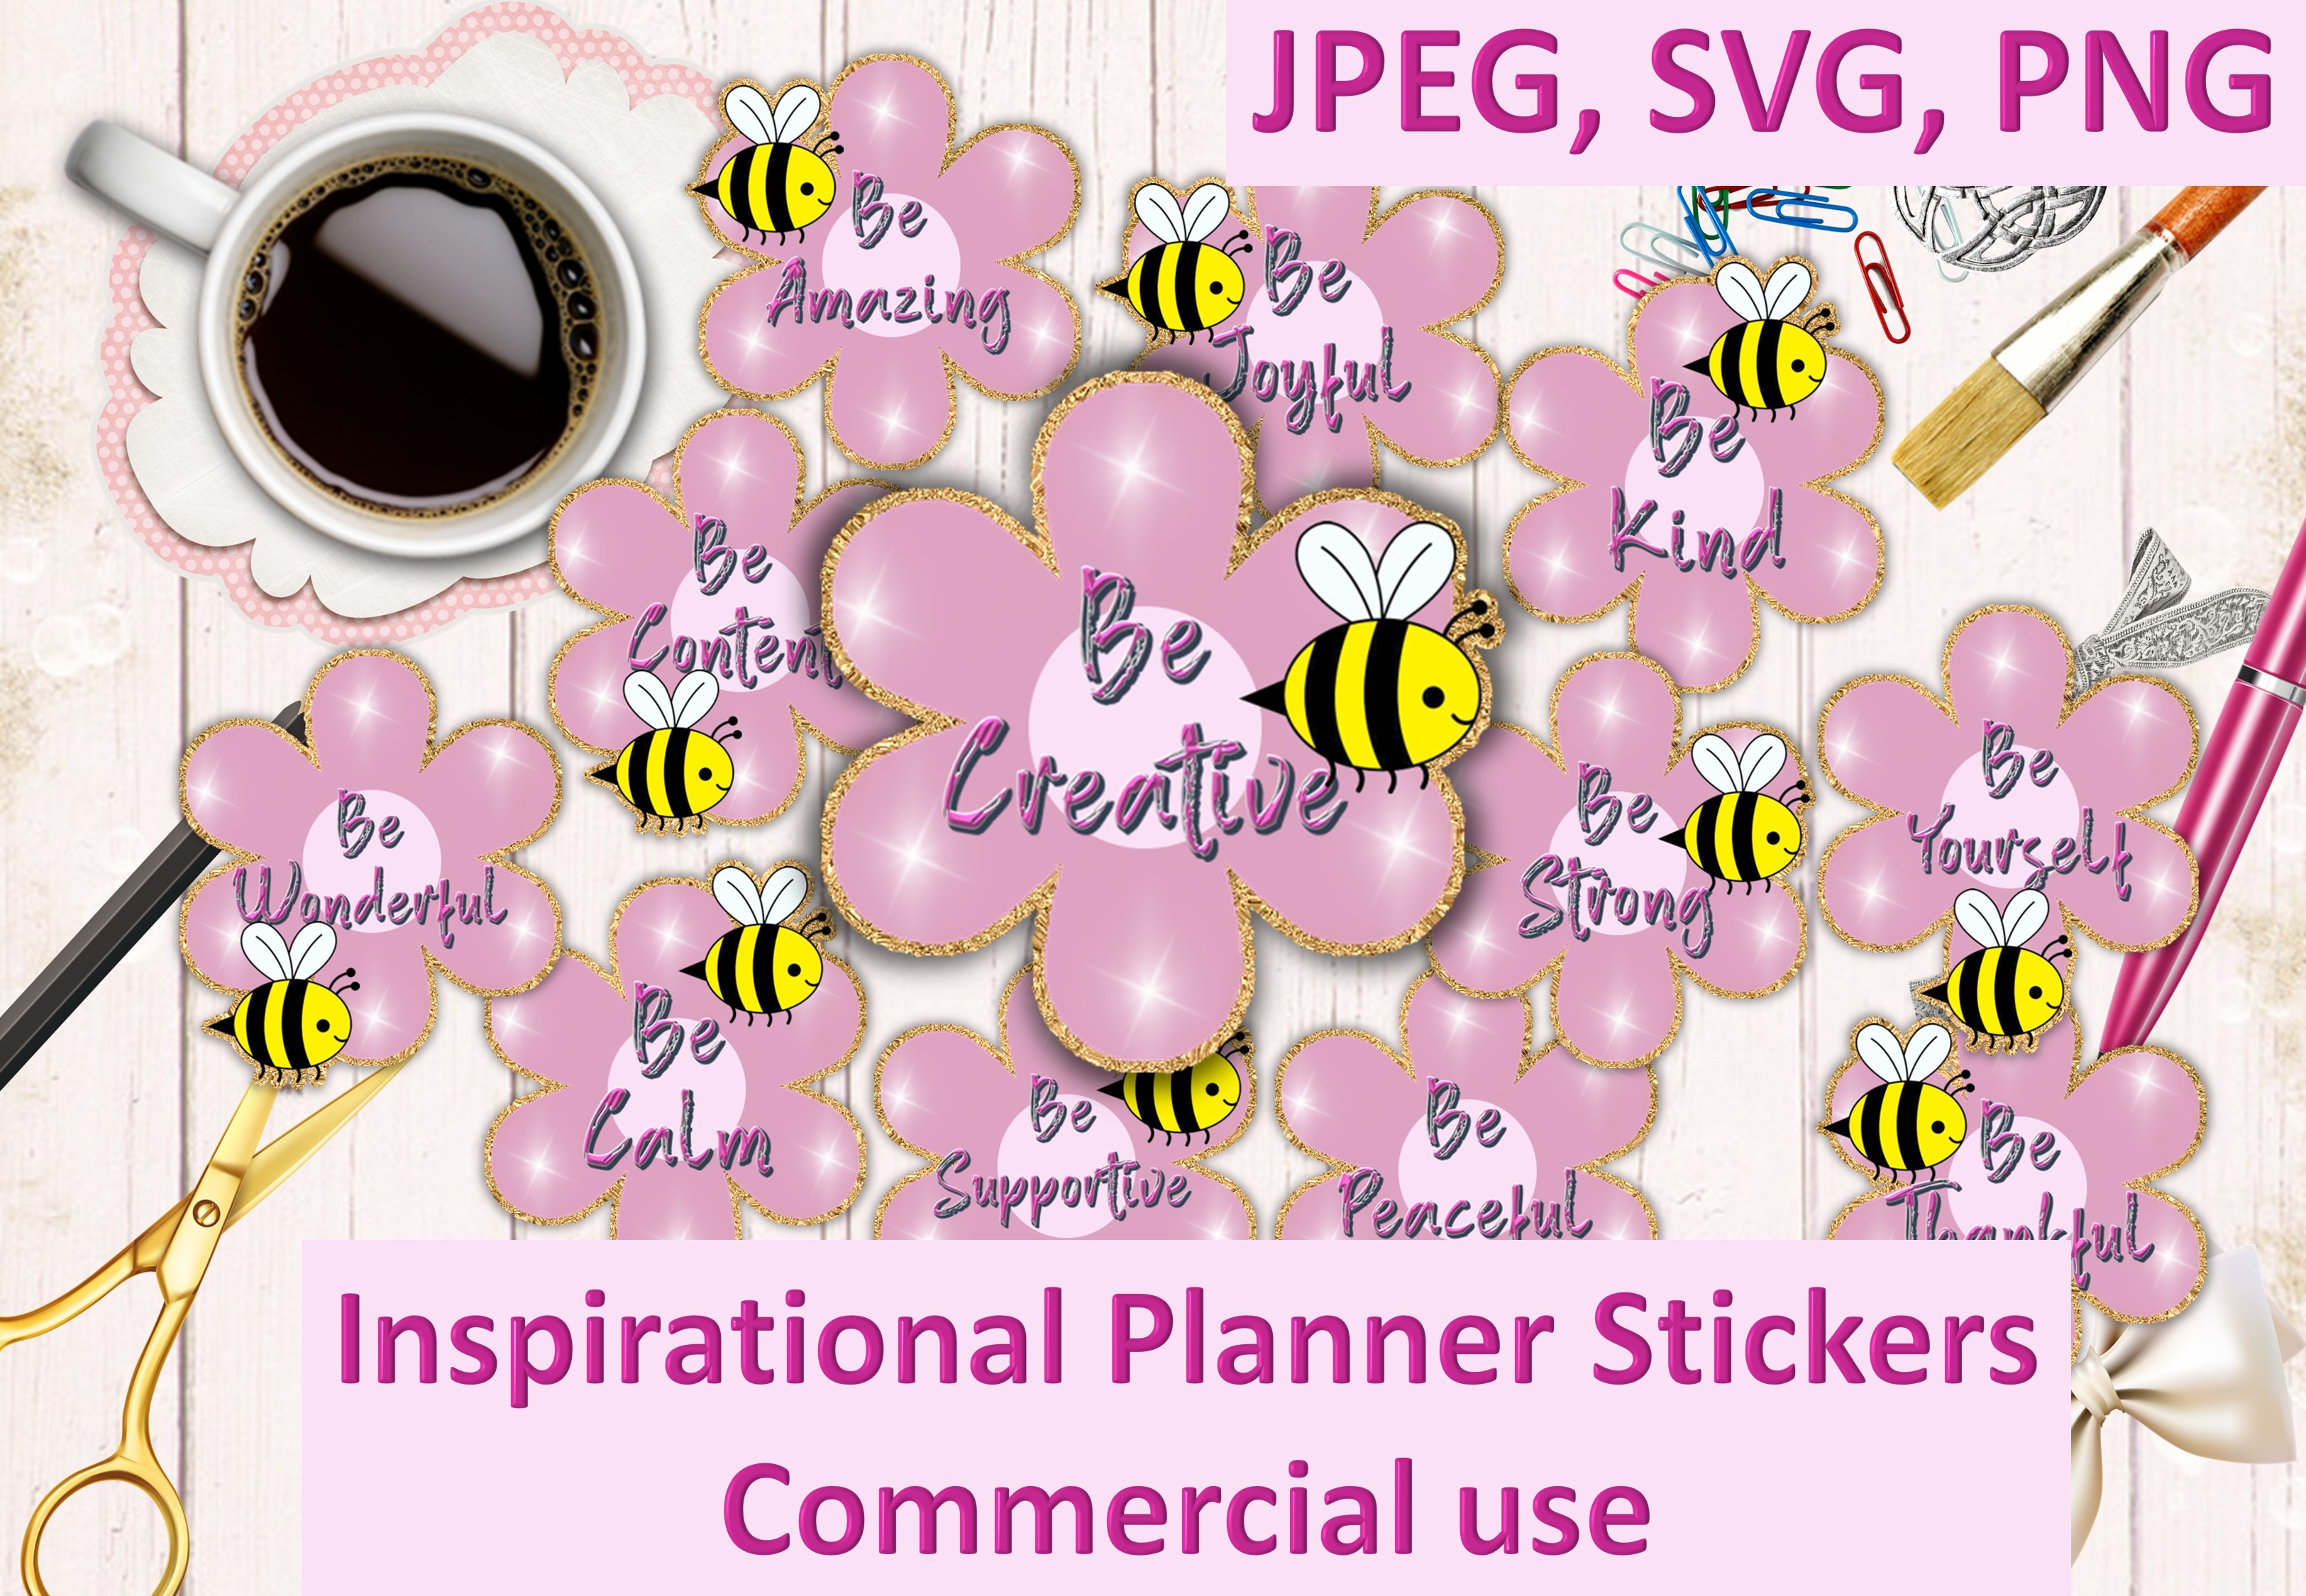 Download Free Inspirational Stickers Graphic By Digitalcraftsco Creative Fabrica for Cricut Explore, Silhouette and other cutting machines.